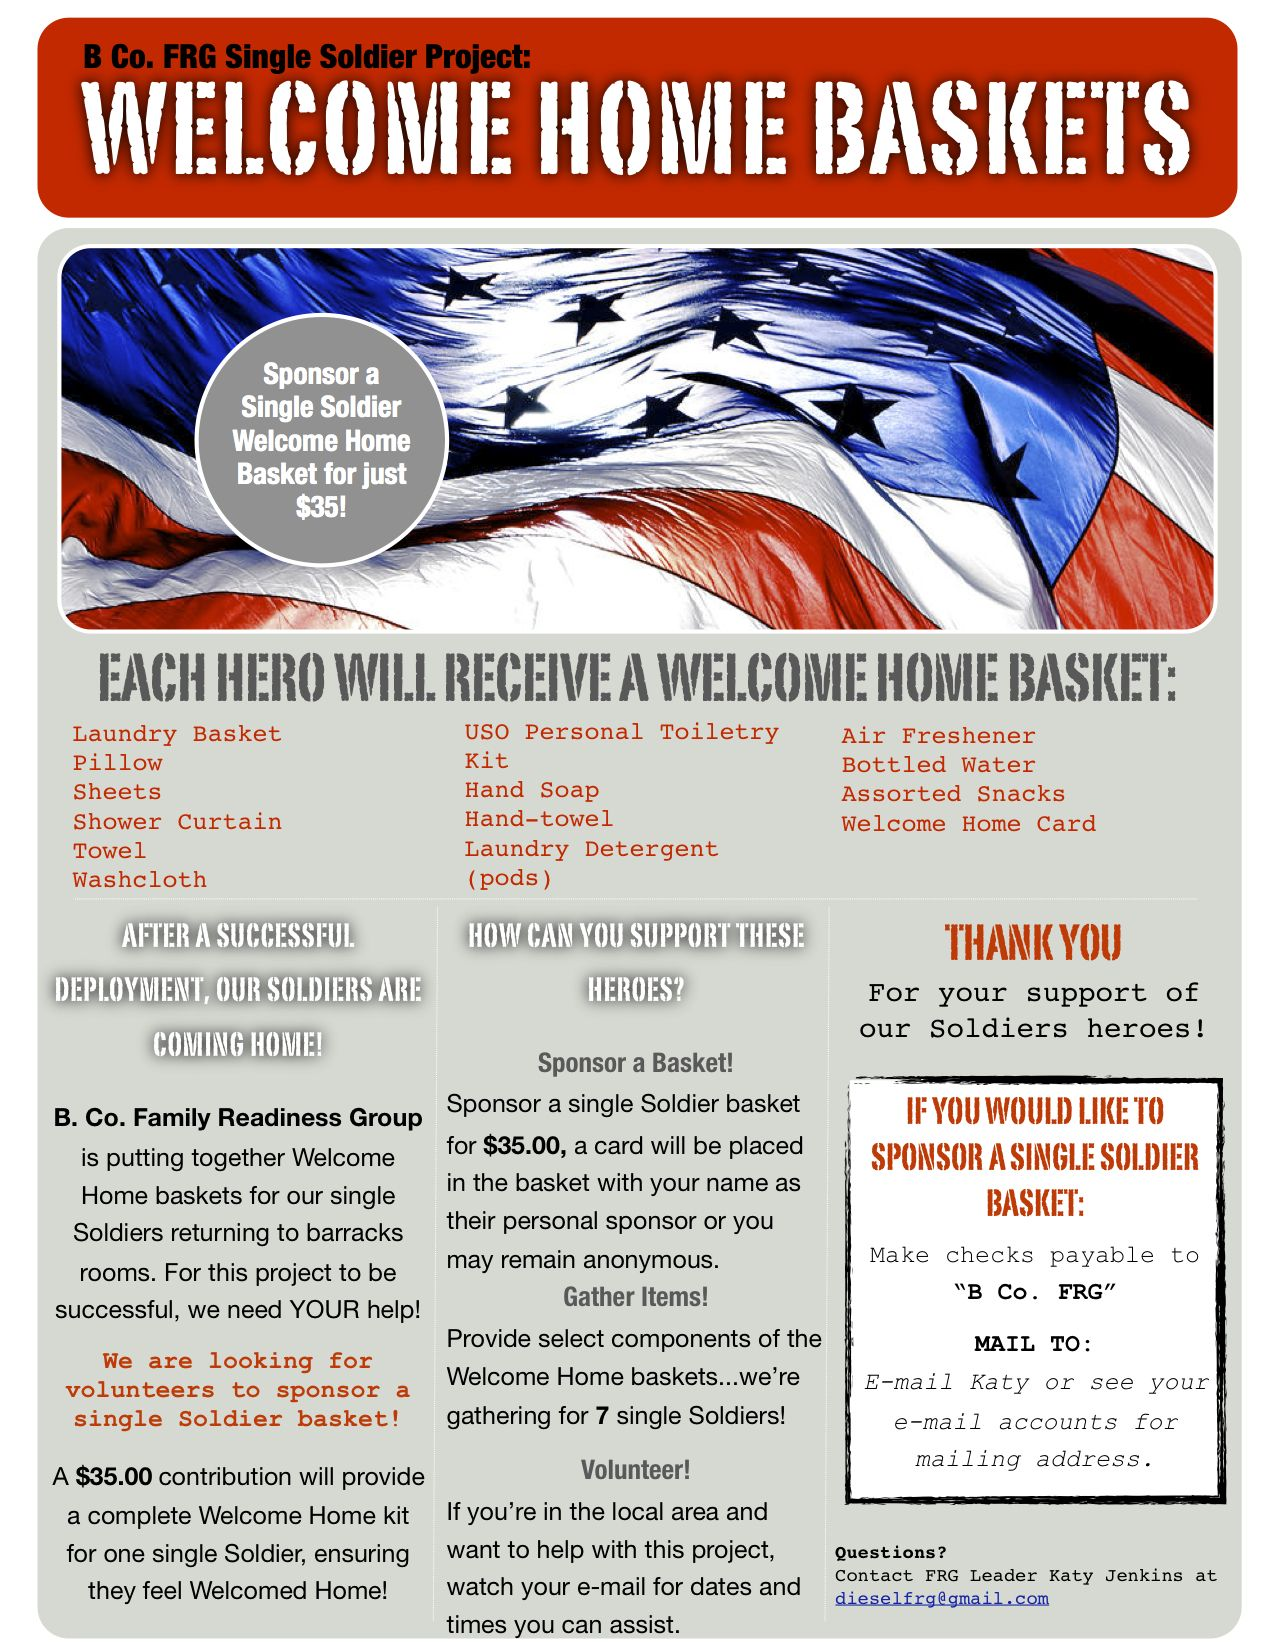 Single soldier welcome home baskets for barracks b co frg single soldier welcome home baskets for barracks negle Choice Image